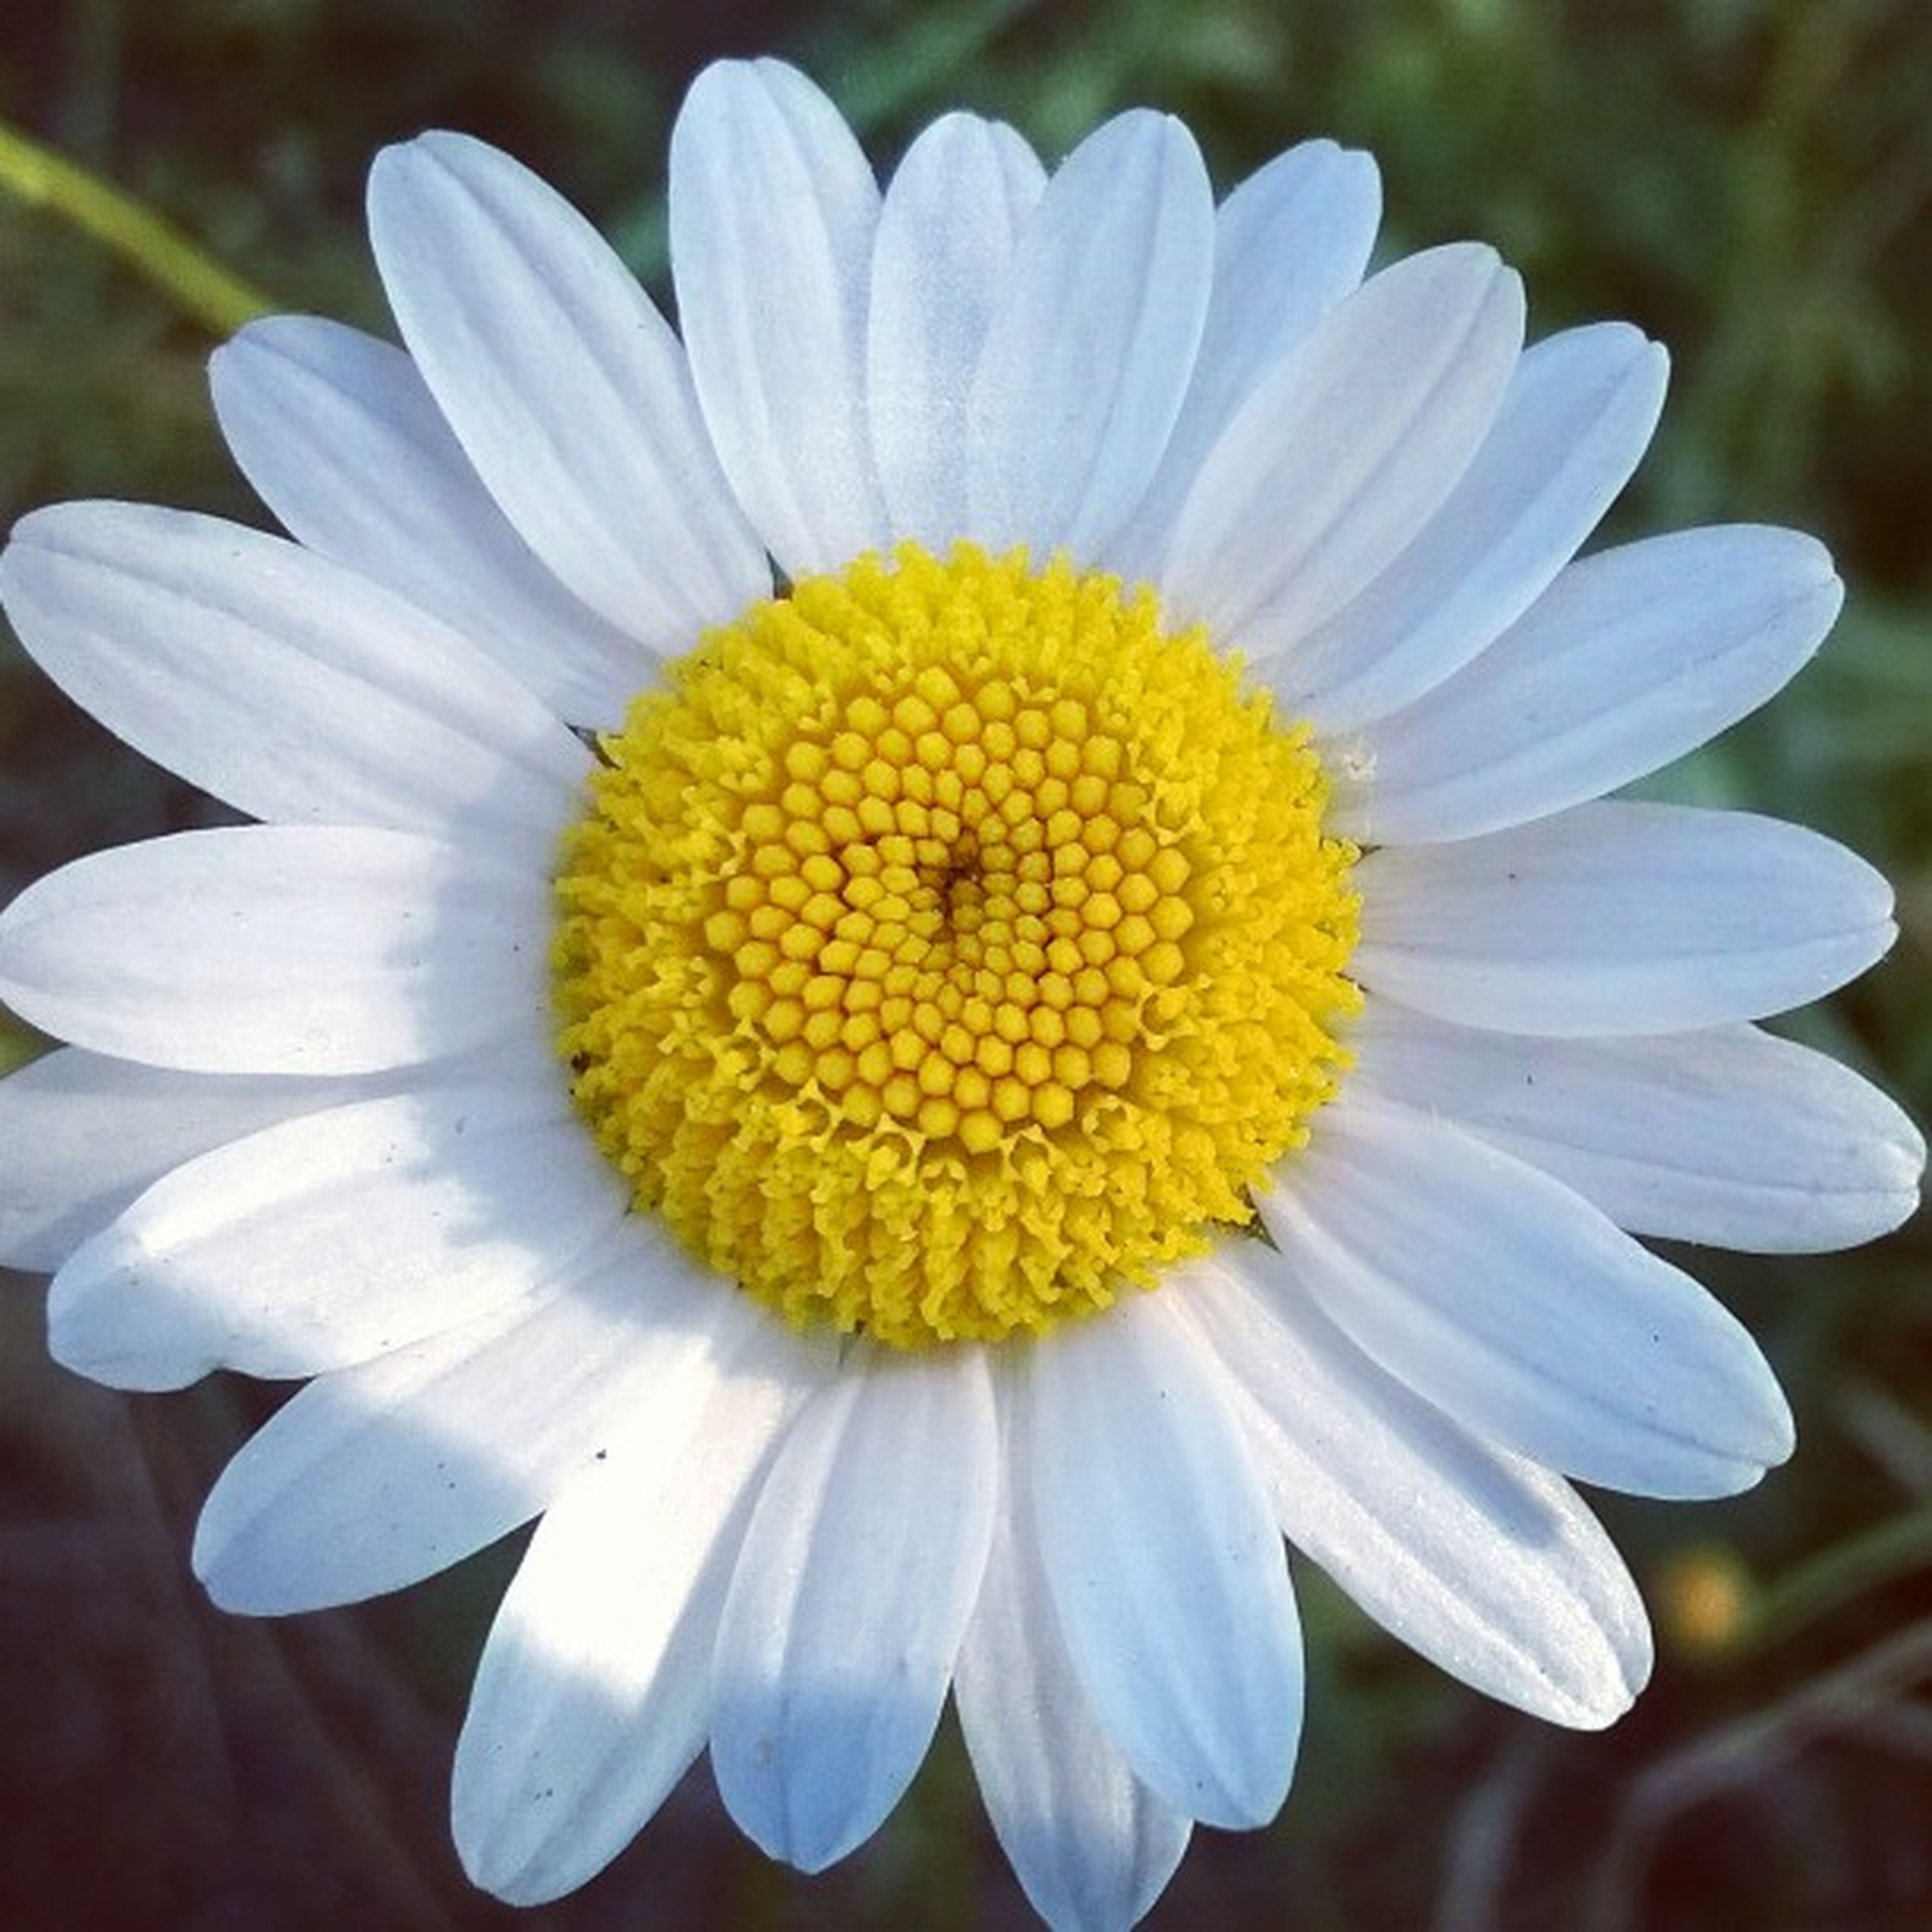 flower, petal, freshness, flower head, fragility, yellow, pollen, close-up, beauty in nature, growth, single flower, daisy, focus on foreground, blooming, nature, white color, in bloom, plant, outdoors, day